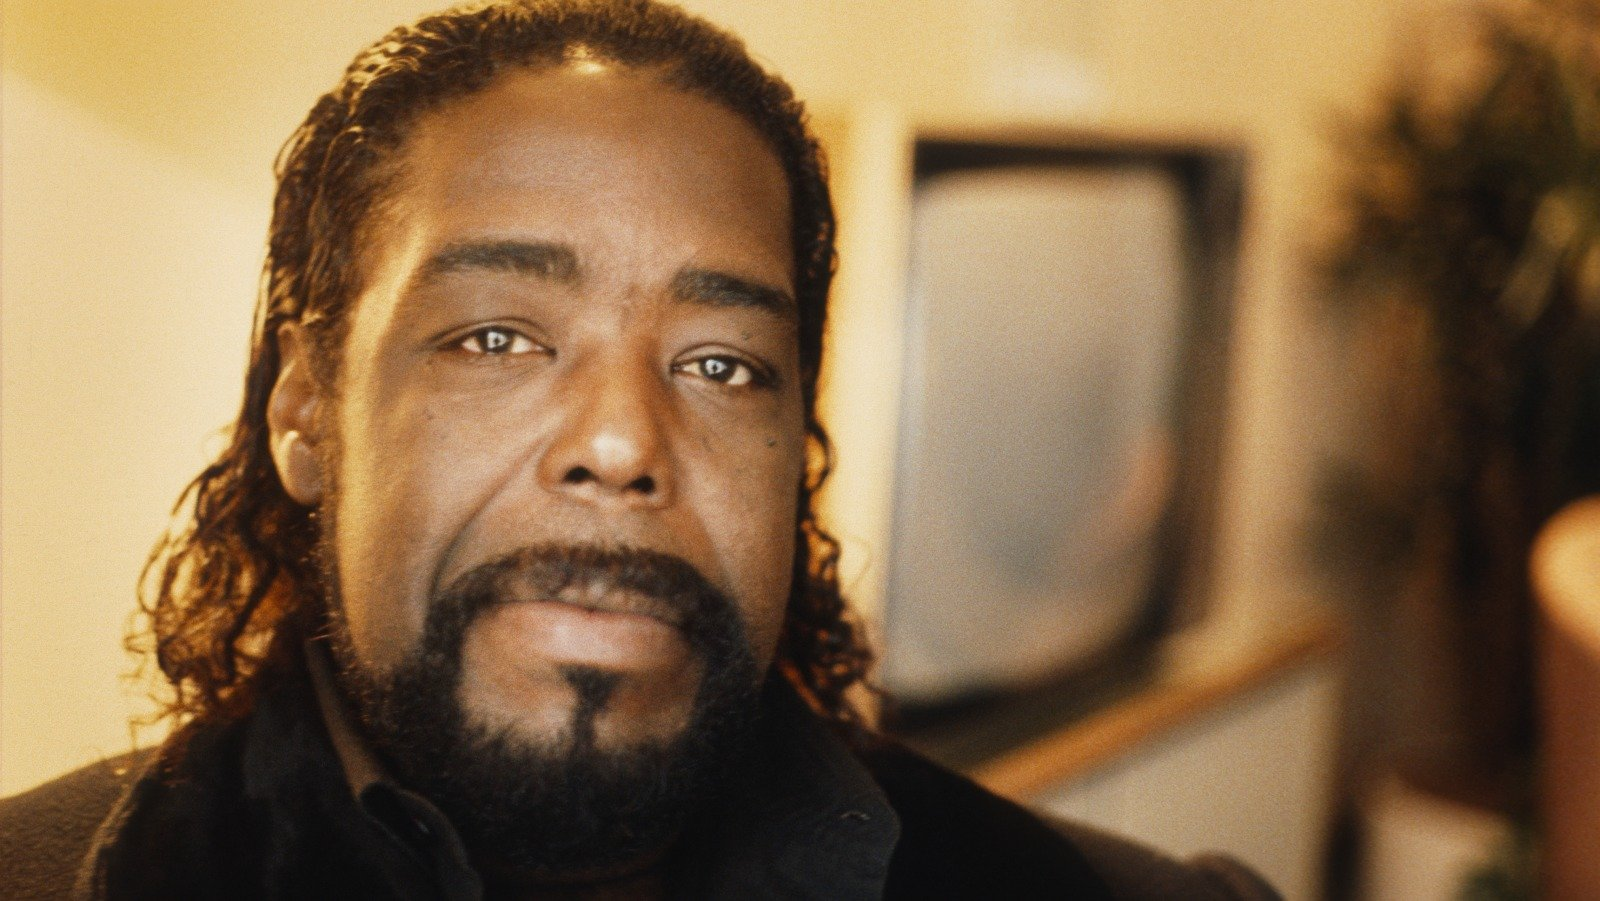 Barry White's Tragic Real-Life Story